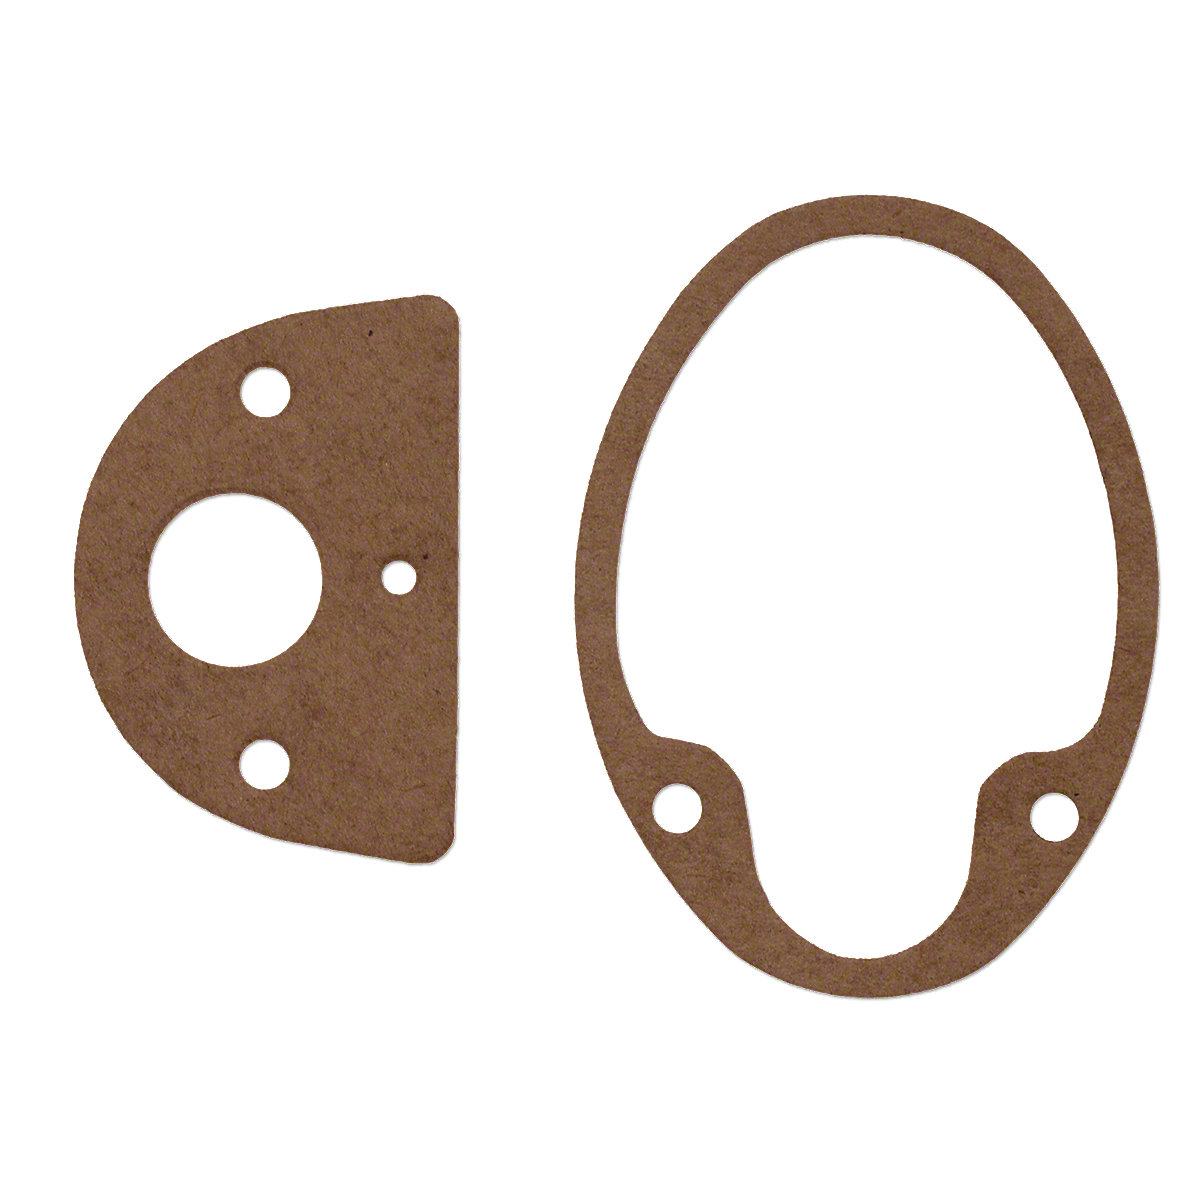 Tachometer Drive Gasket Kit For Massey Ferguson: TO20, TO30, 40, TO35, 135, 150, 165, 175, 180, 30, 35, 65, 85, 88, 97, Super 90, Massey Harris: 50.